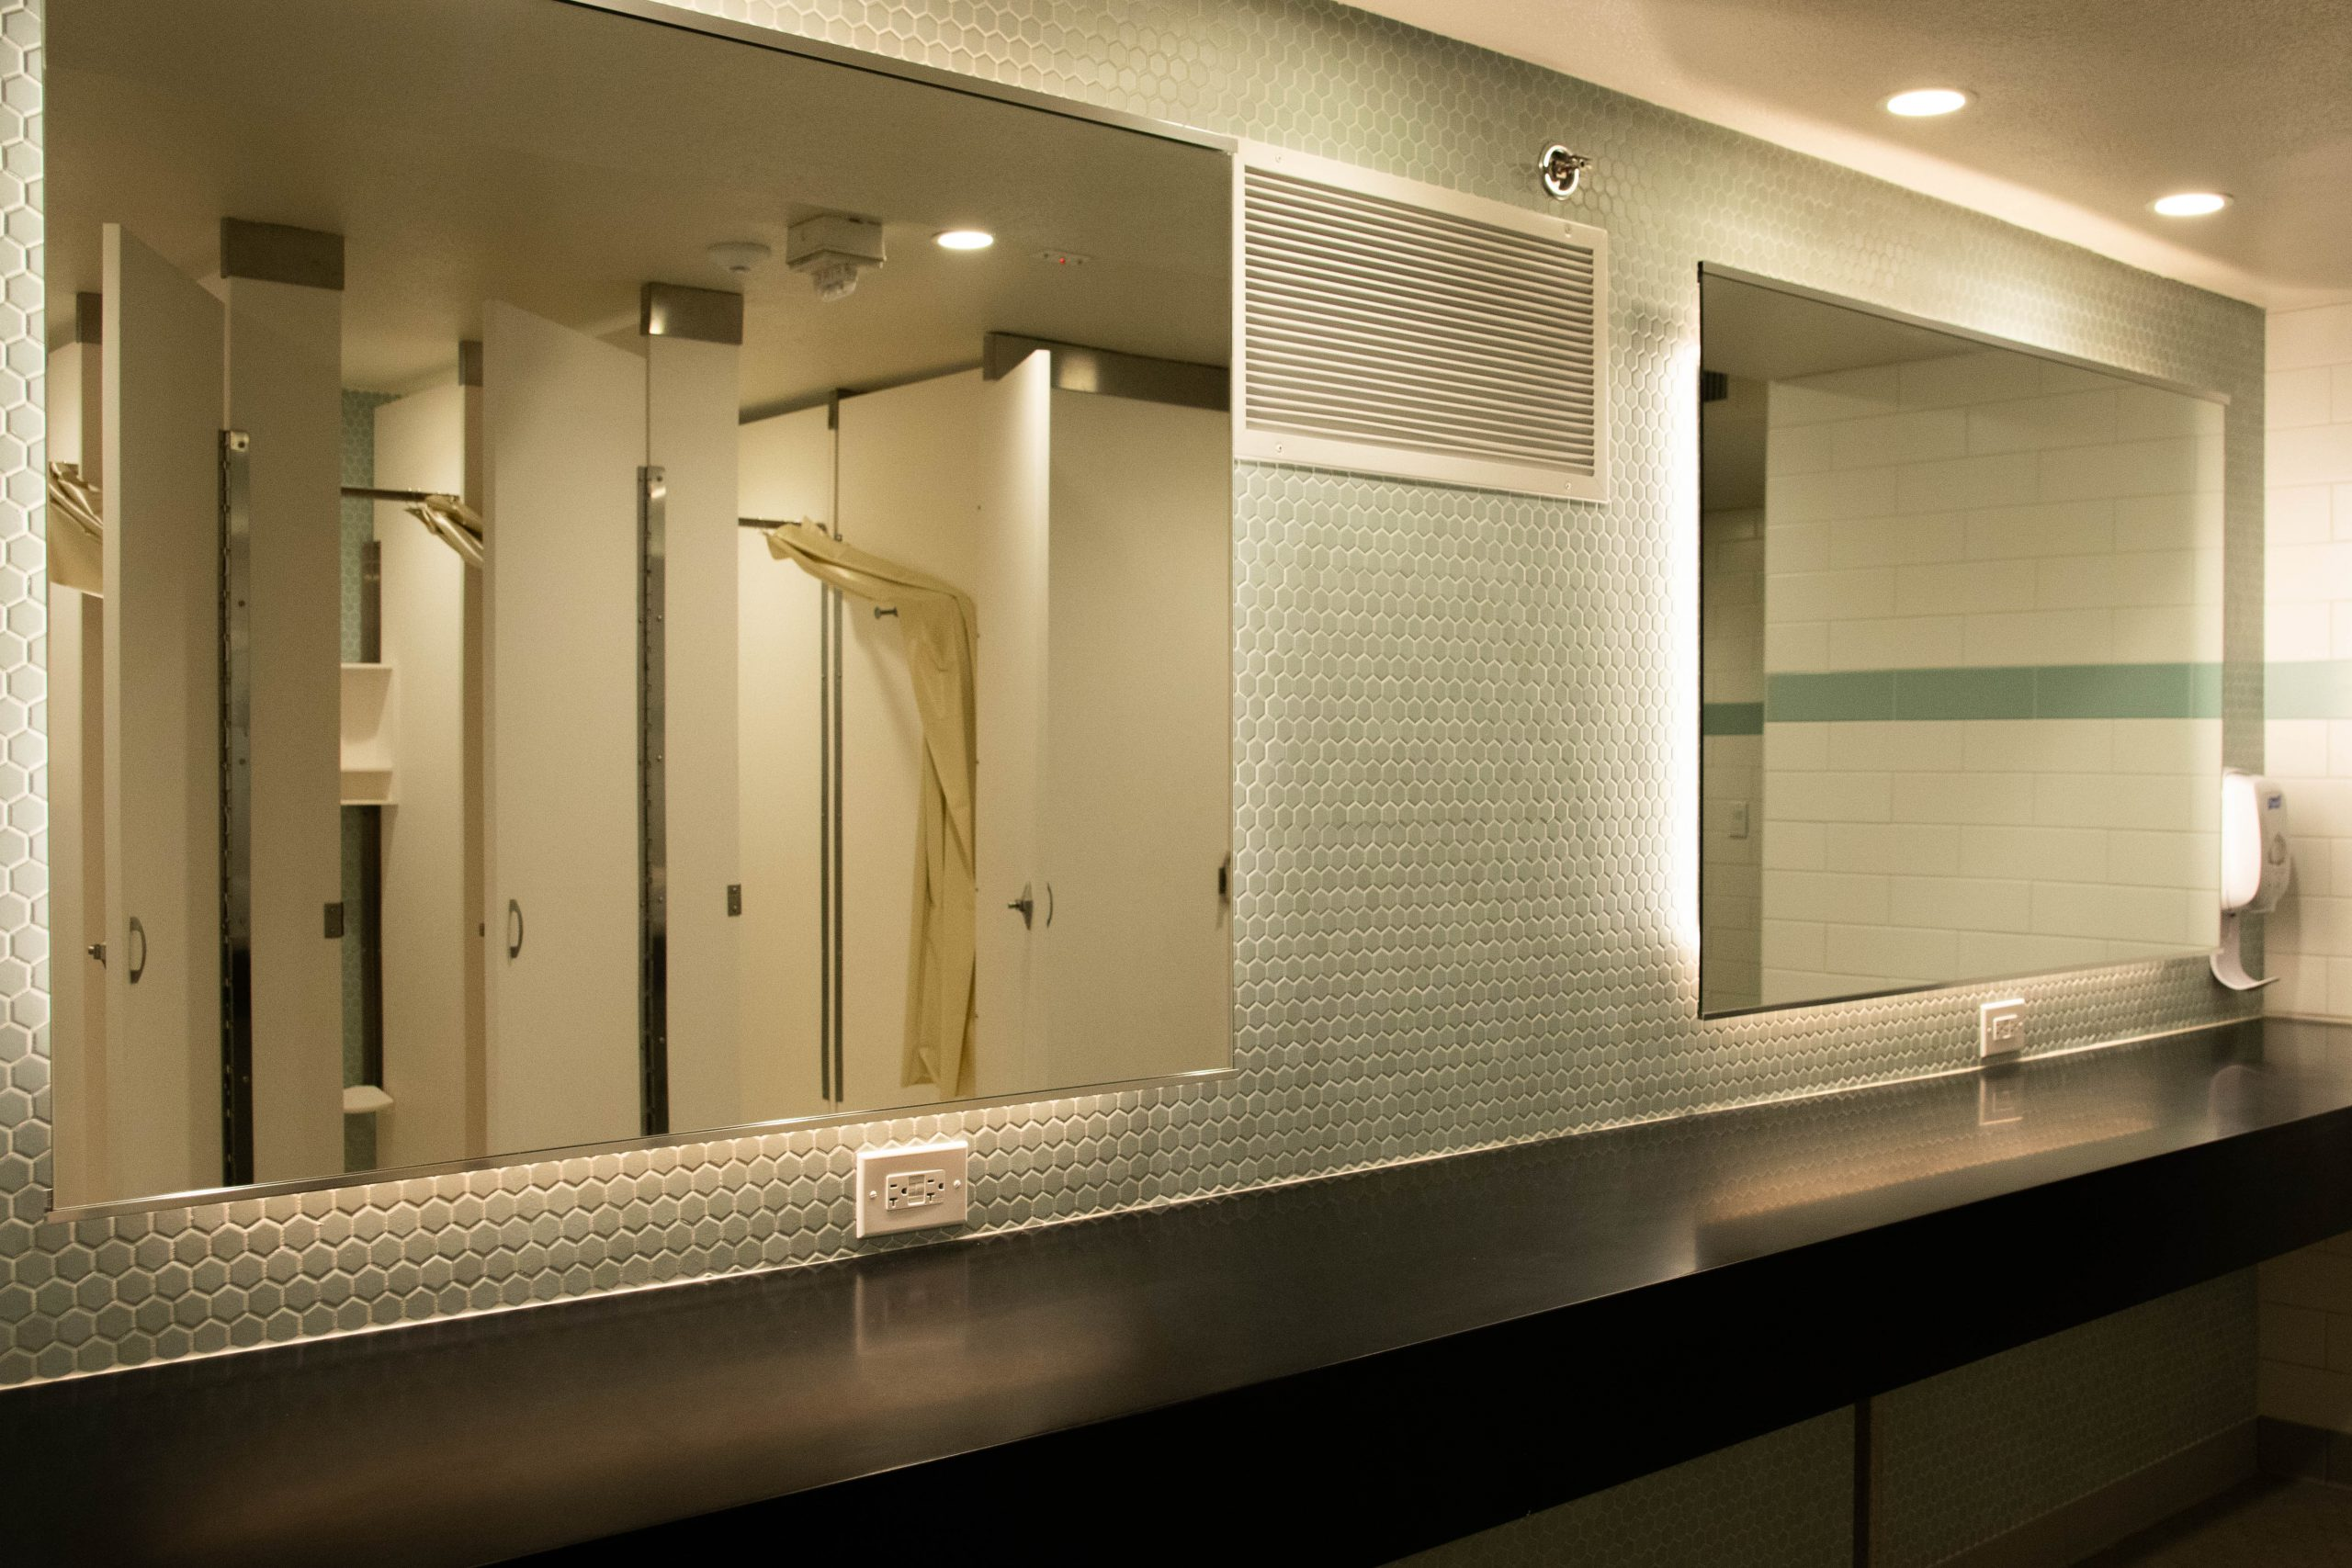 Interior Image of Legett Bathroom Mirrors